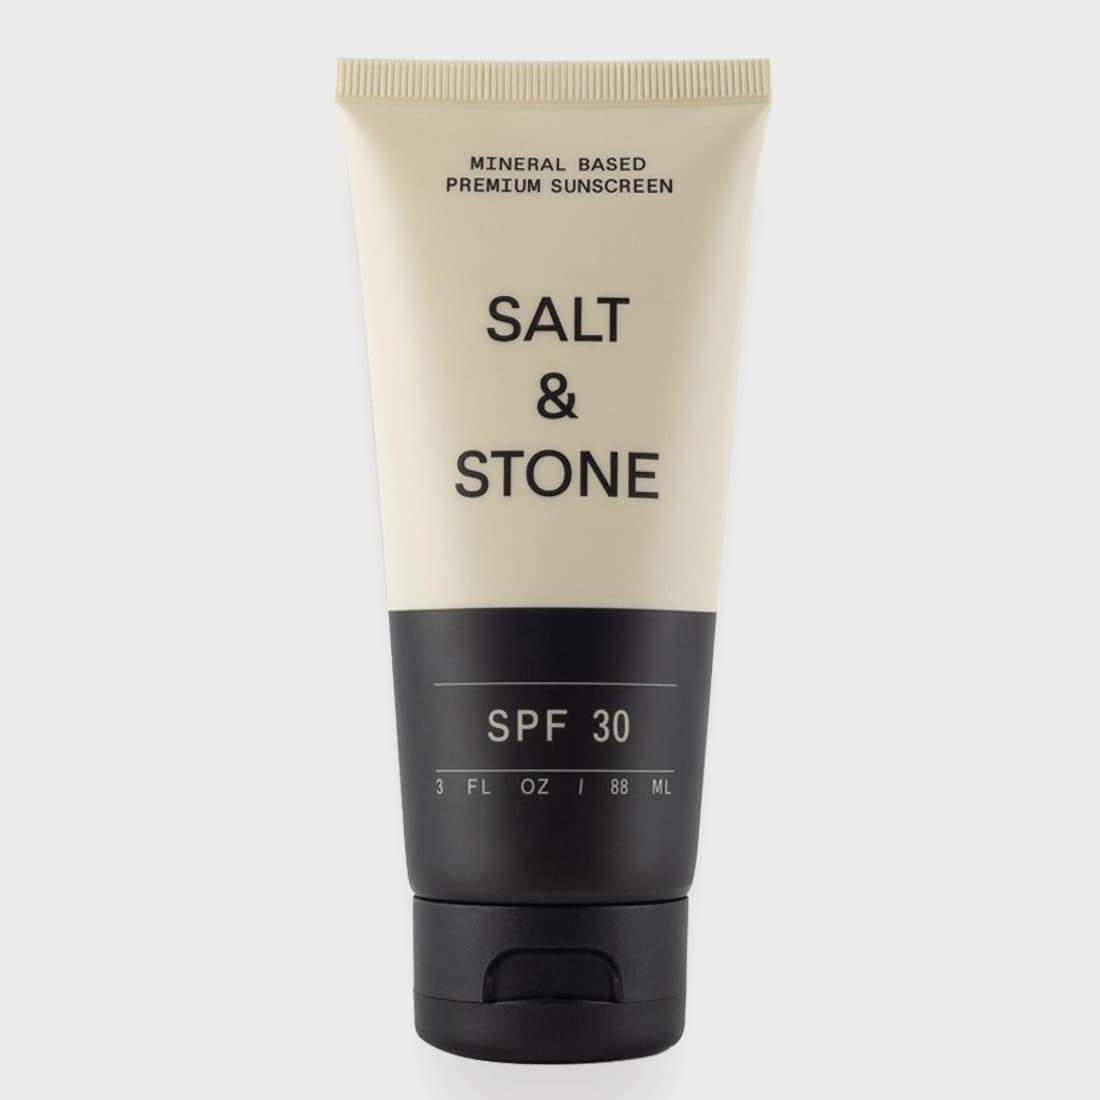 Salt and Stone Mineral Based SPF 30 Sunscreen Lotion Black